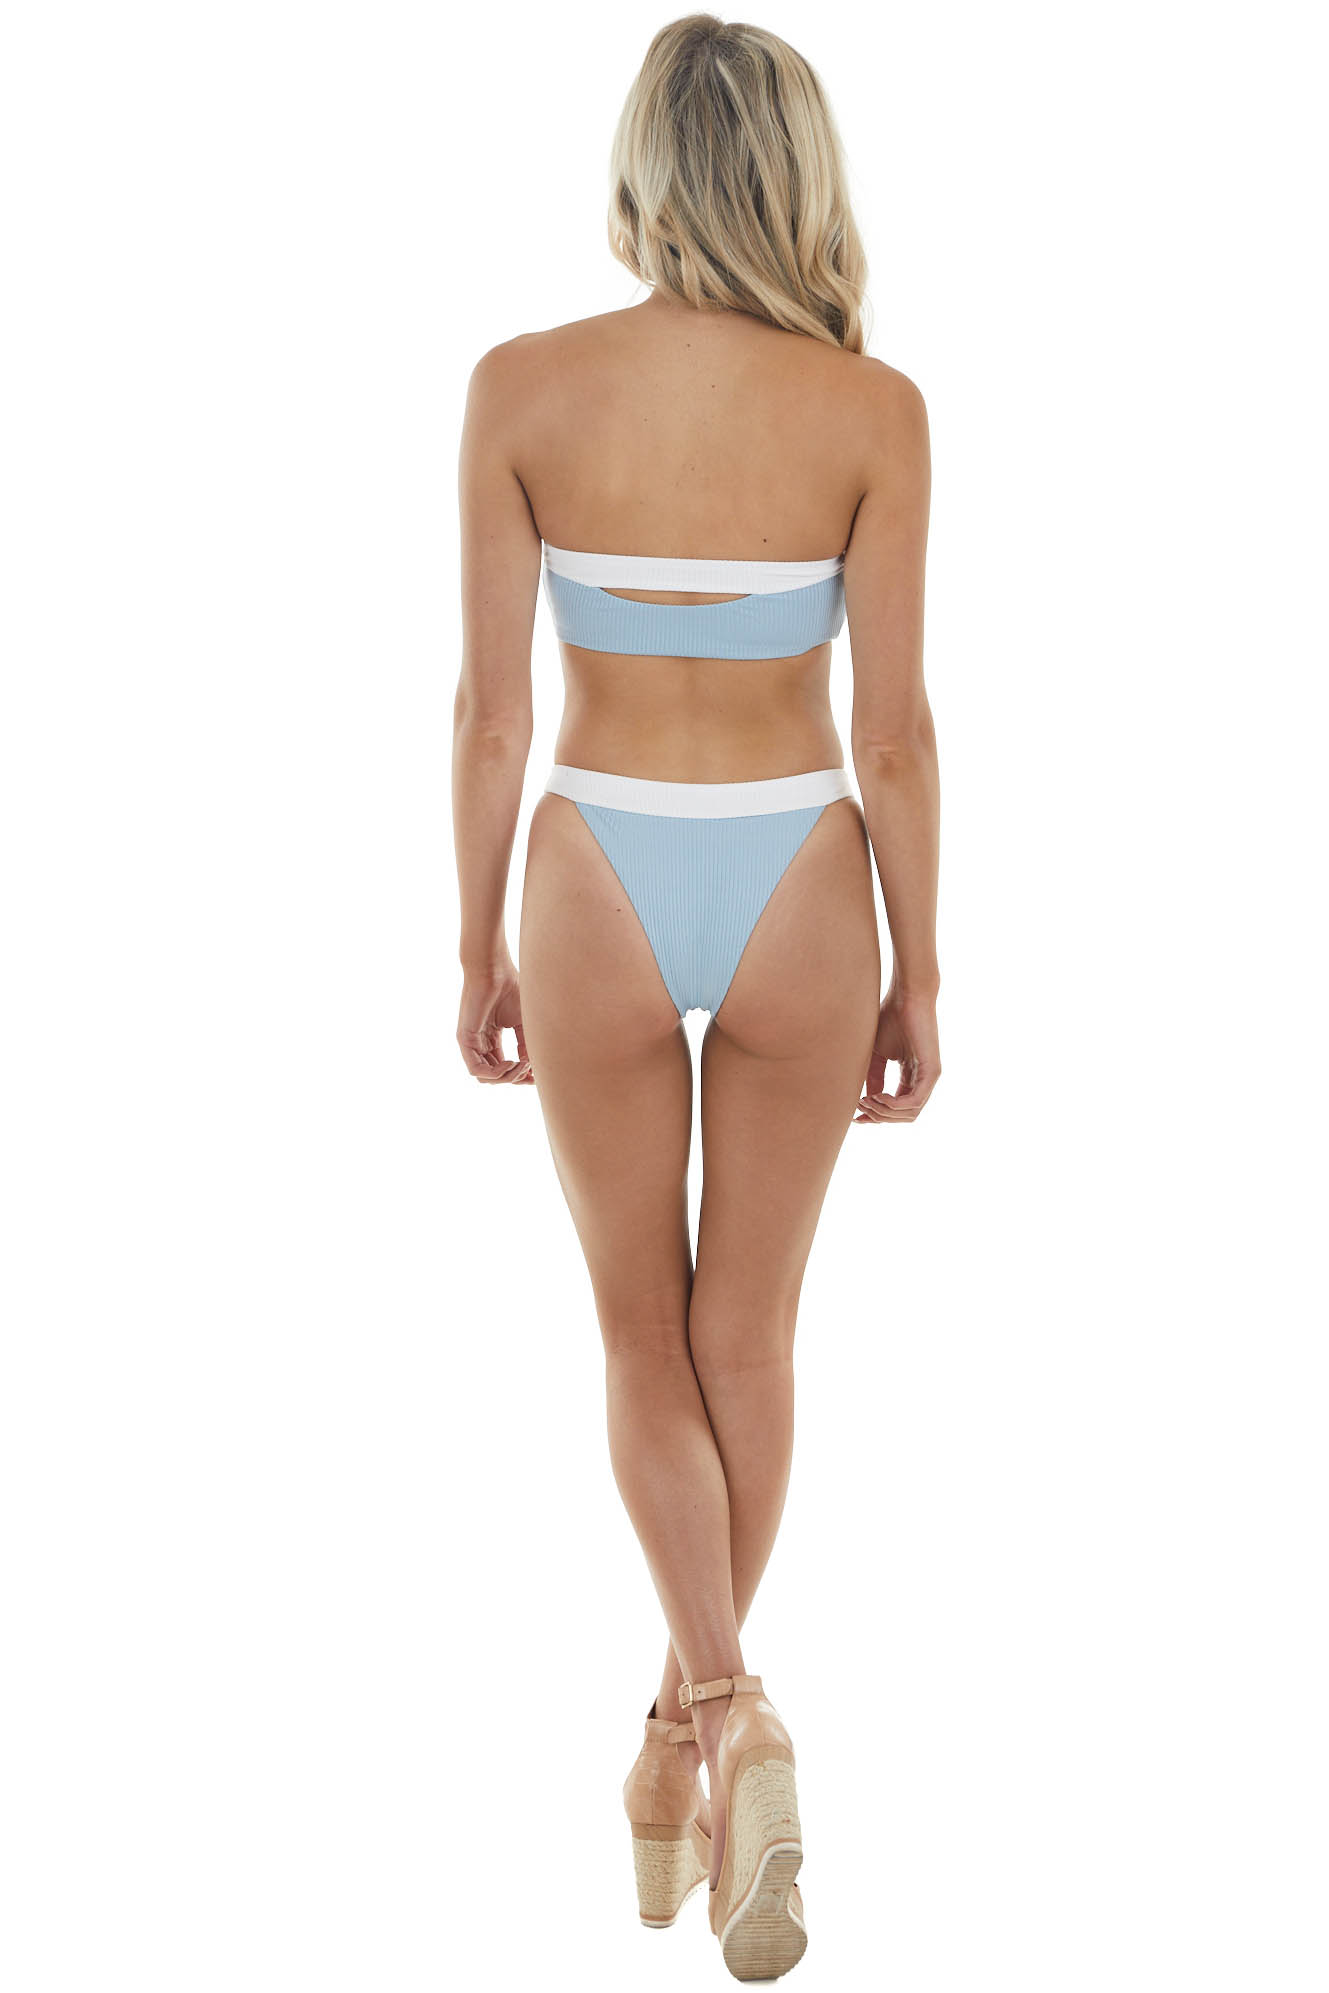 Powder Blue and White Ribbed Knit Cut Out Strapless Bikini